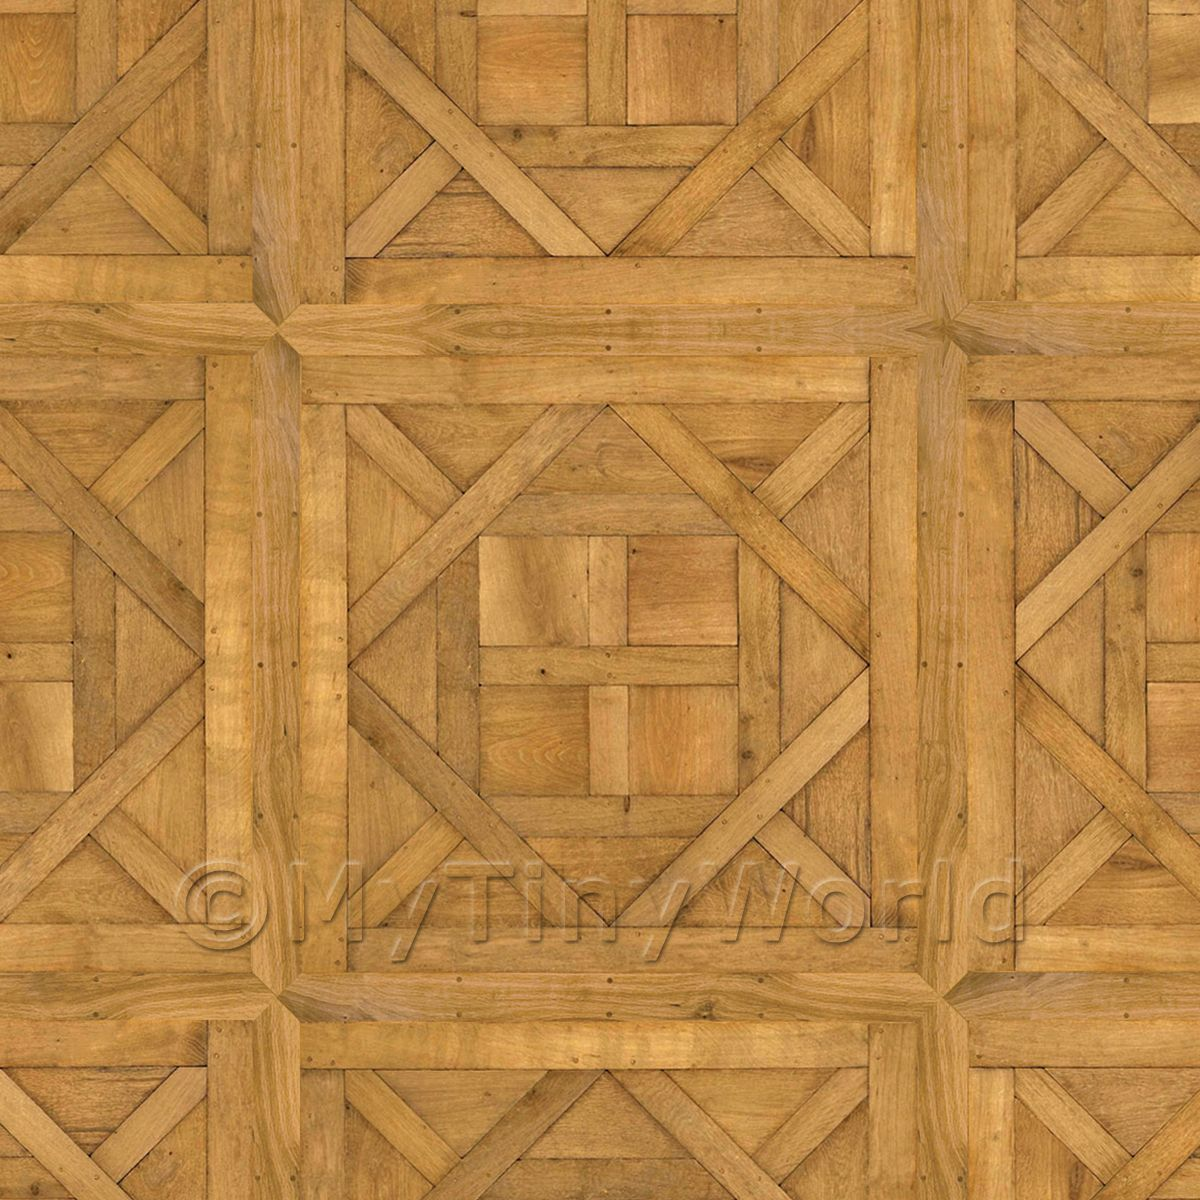 Dolls House Aremberg Large Panel Parquet With Cross Frame Floor